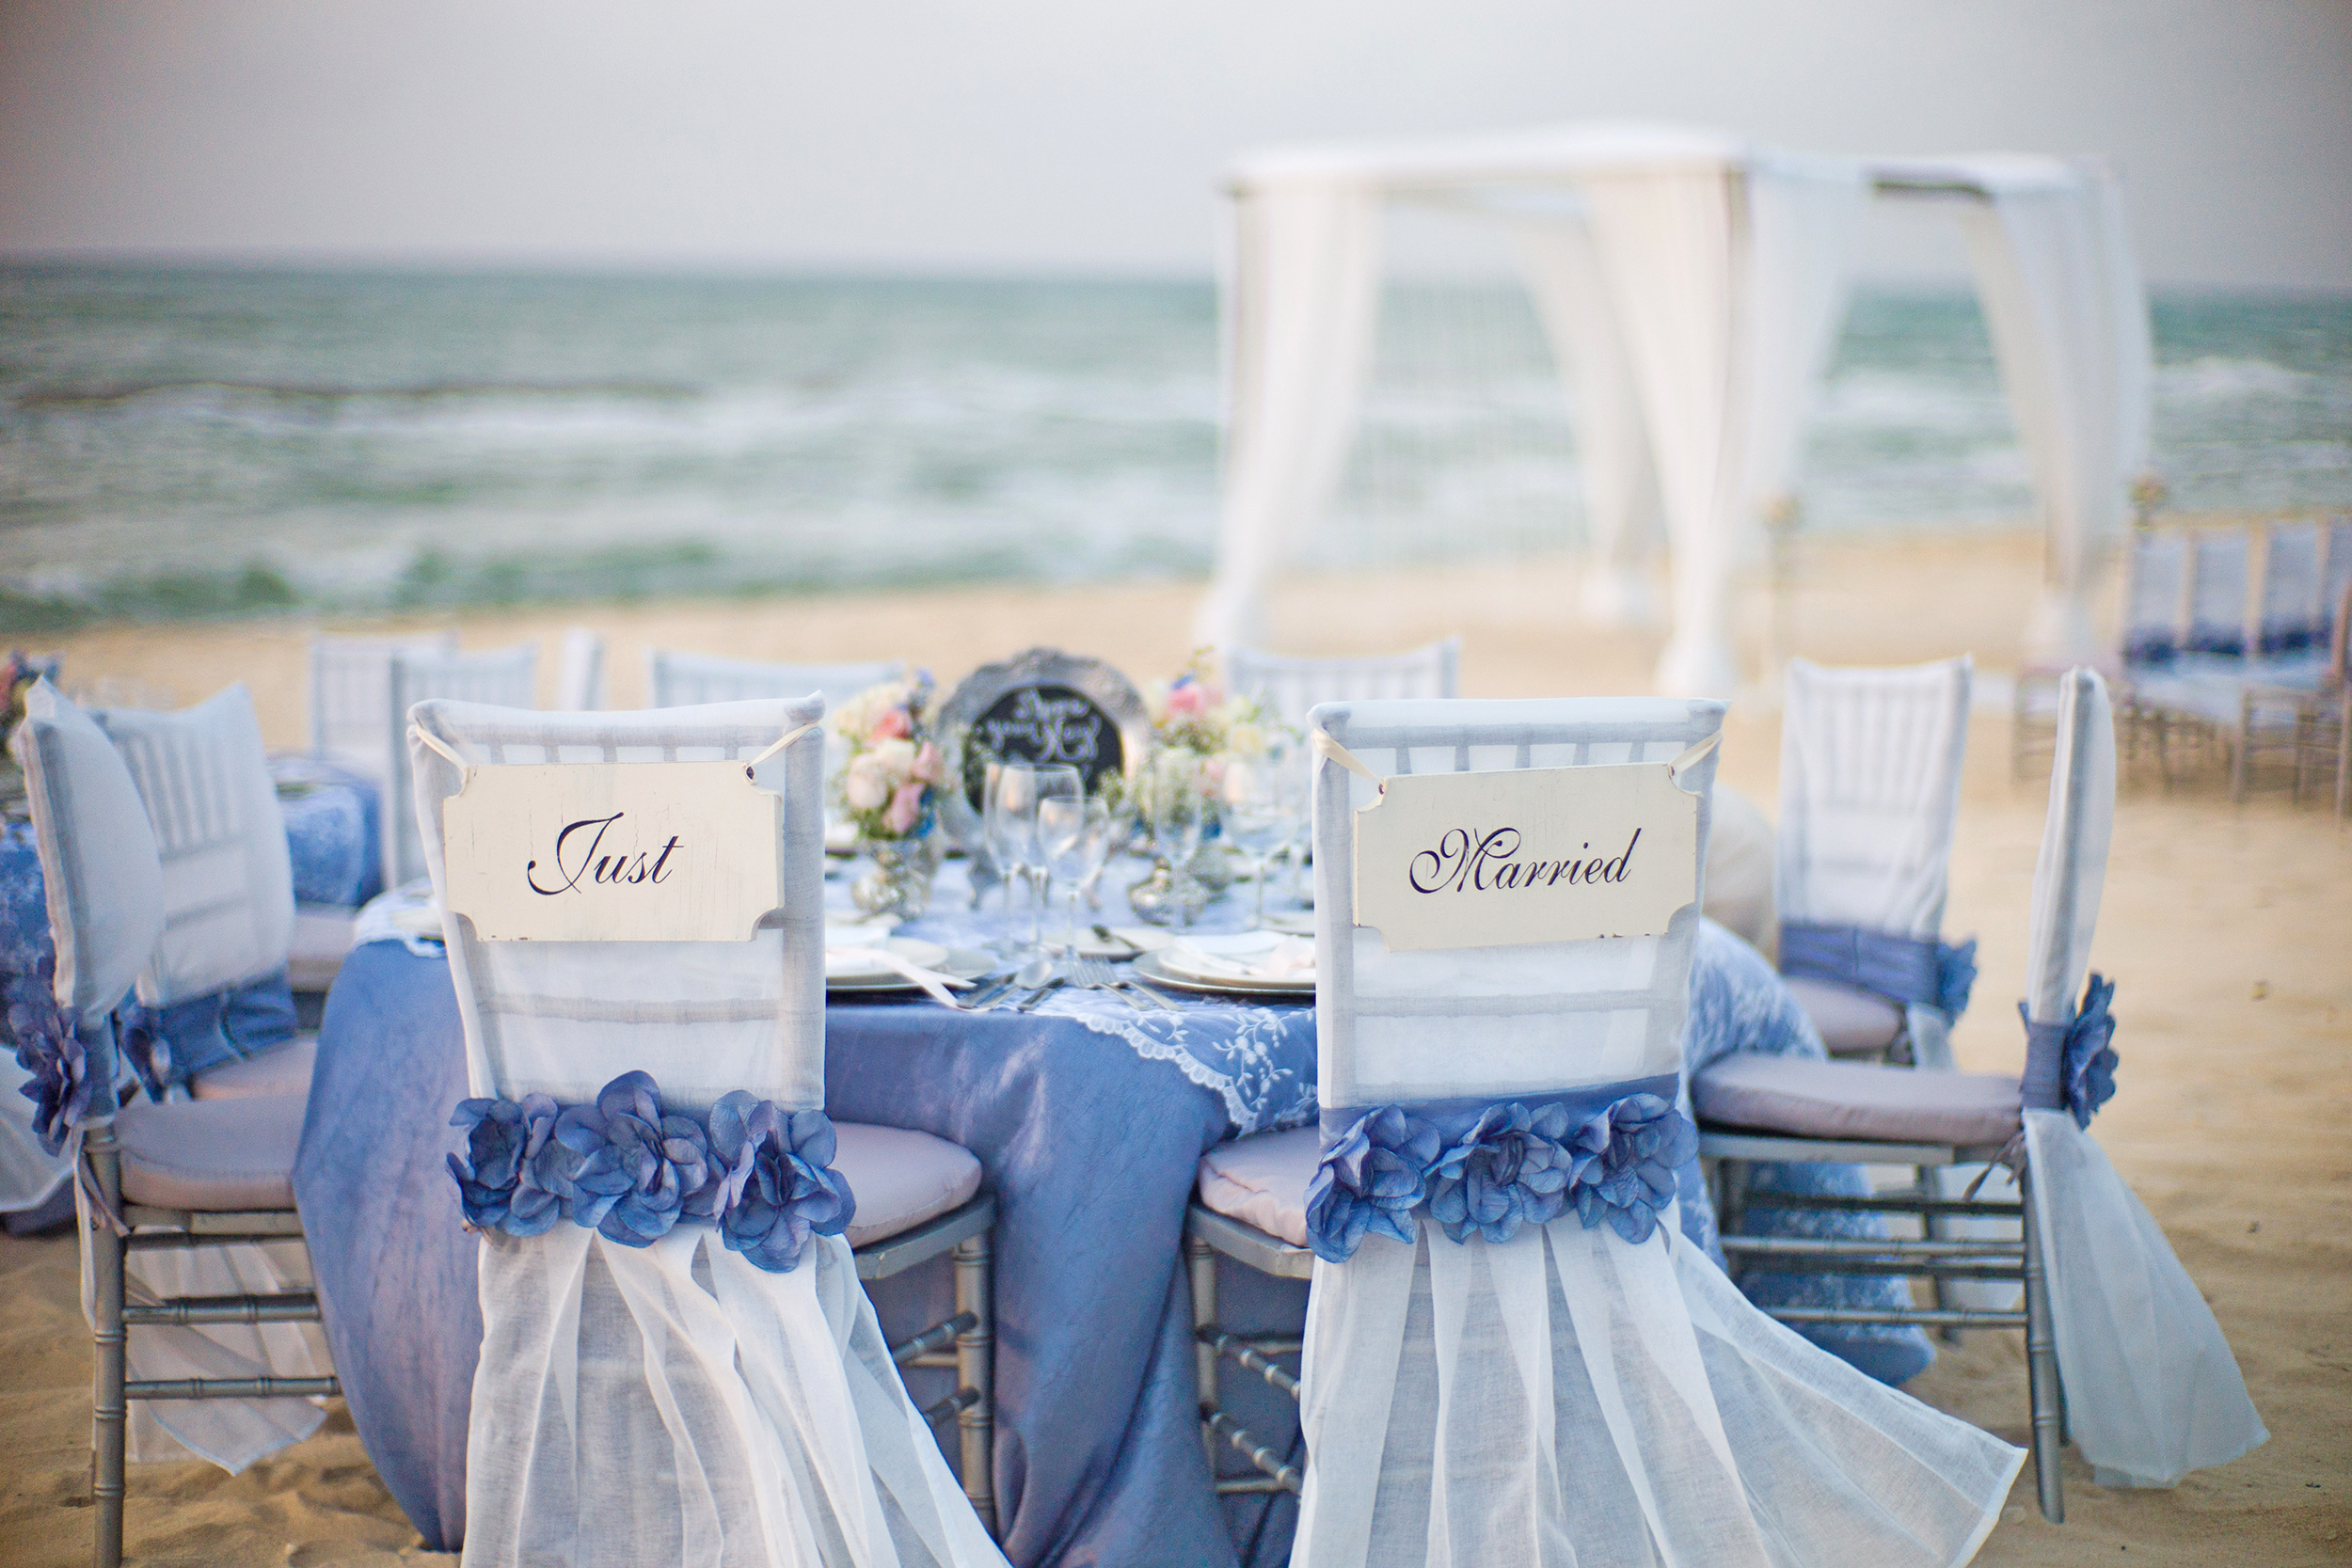 Vintage Elegance Ceremony with Chair Signs and Ceremony.jpg